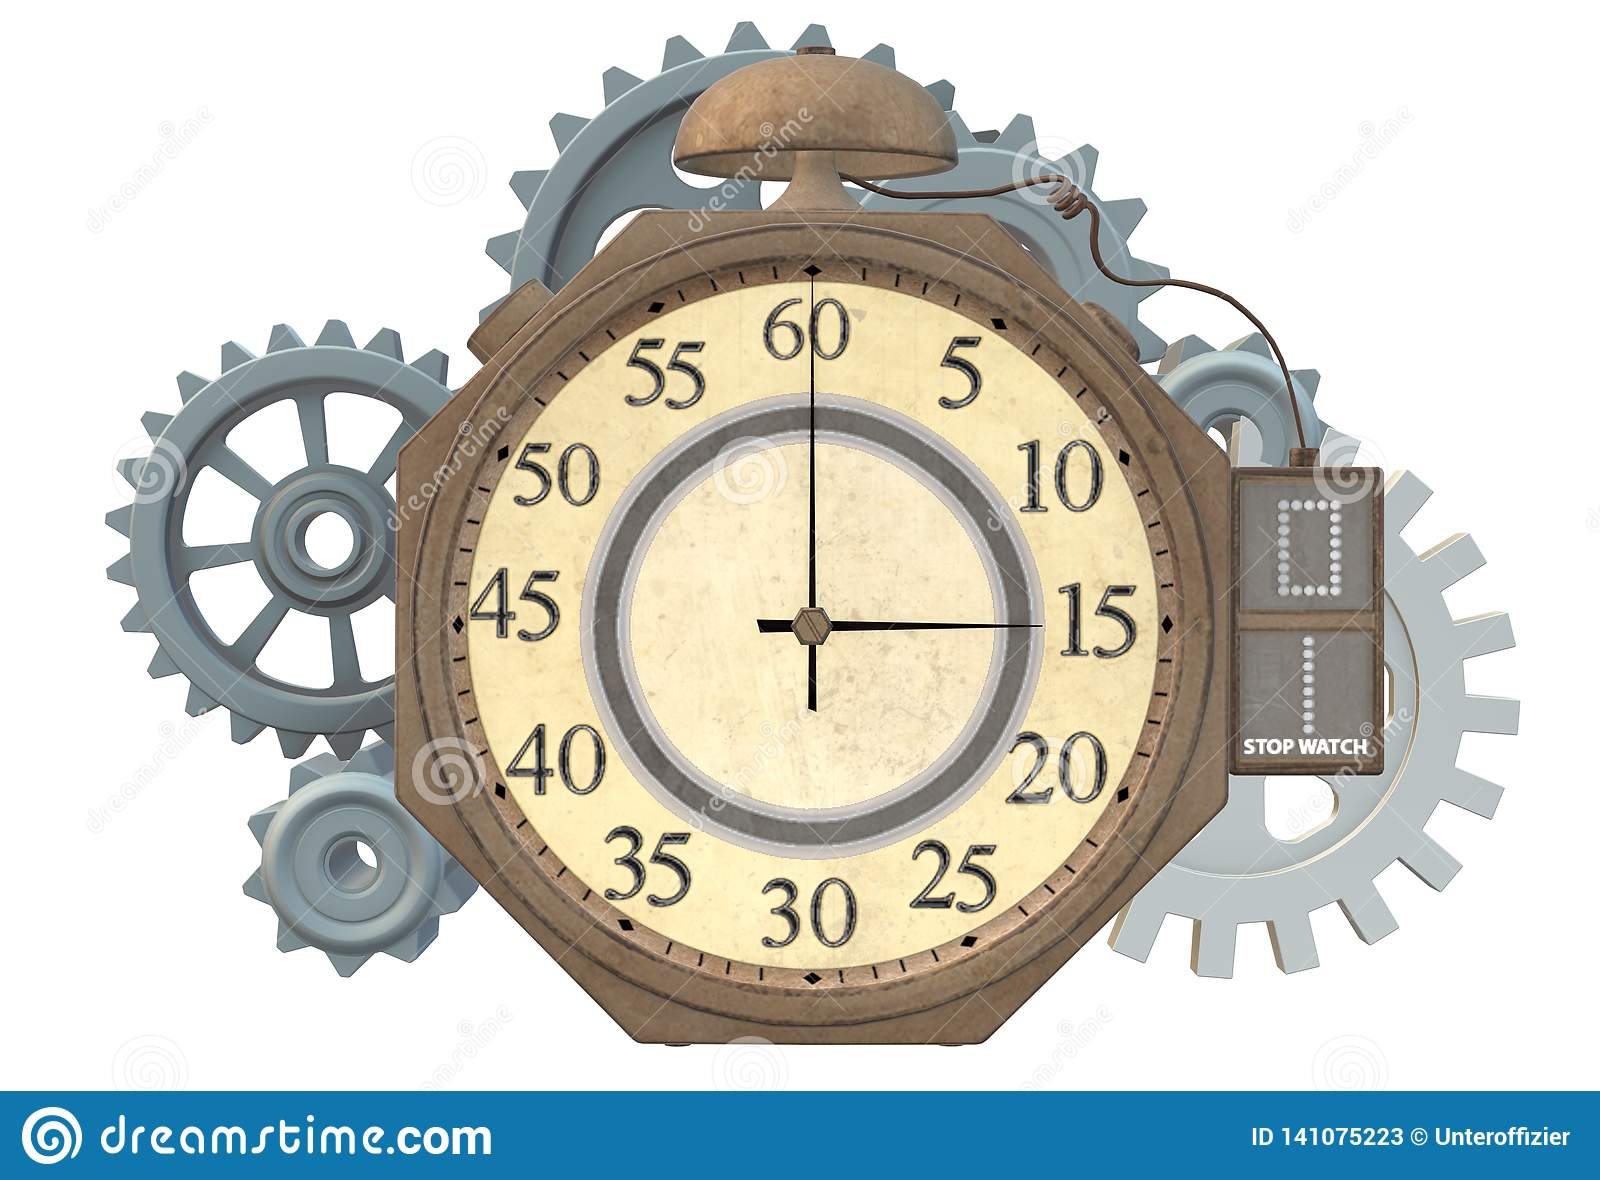 A steampunk stopwatch clock with gear train at the back